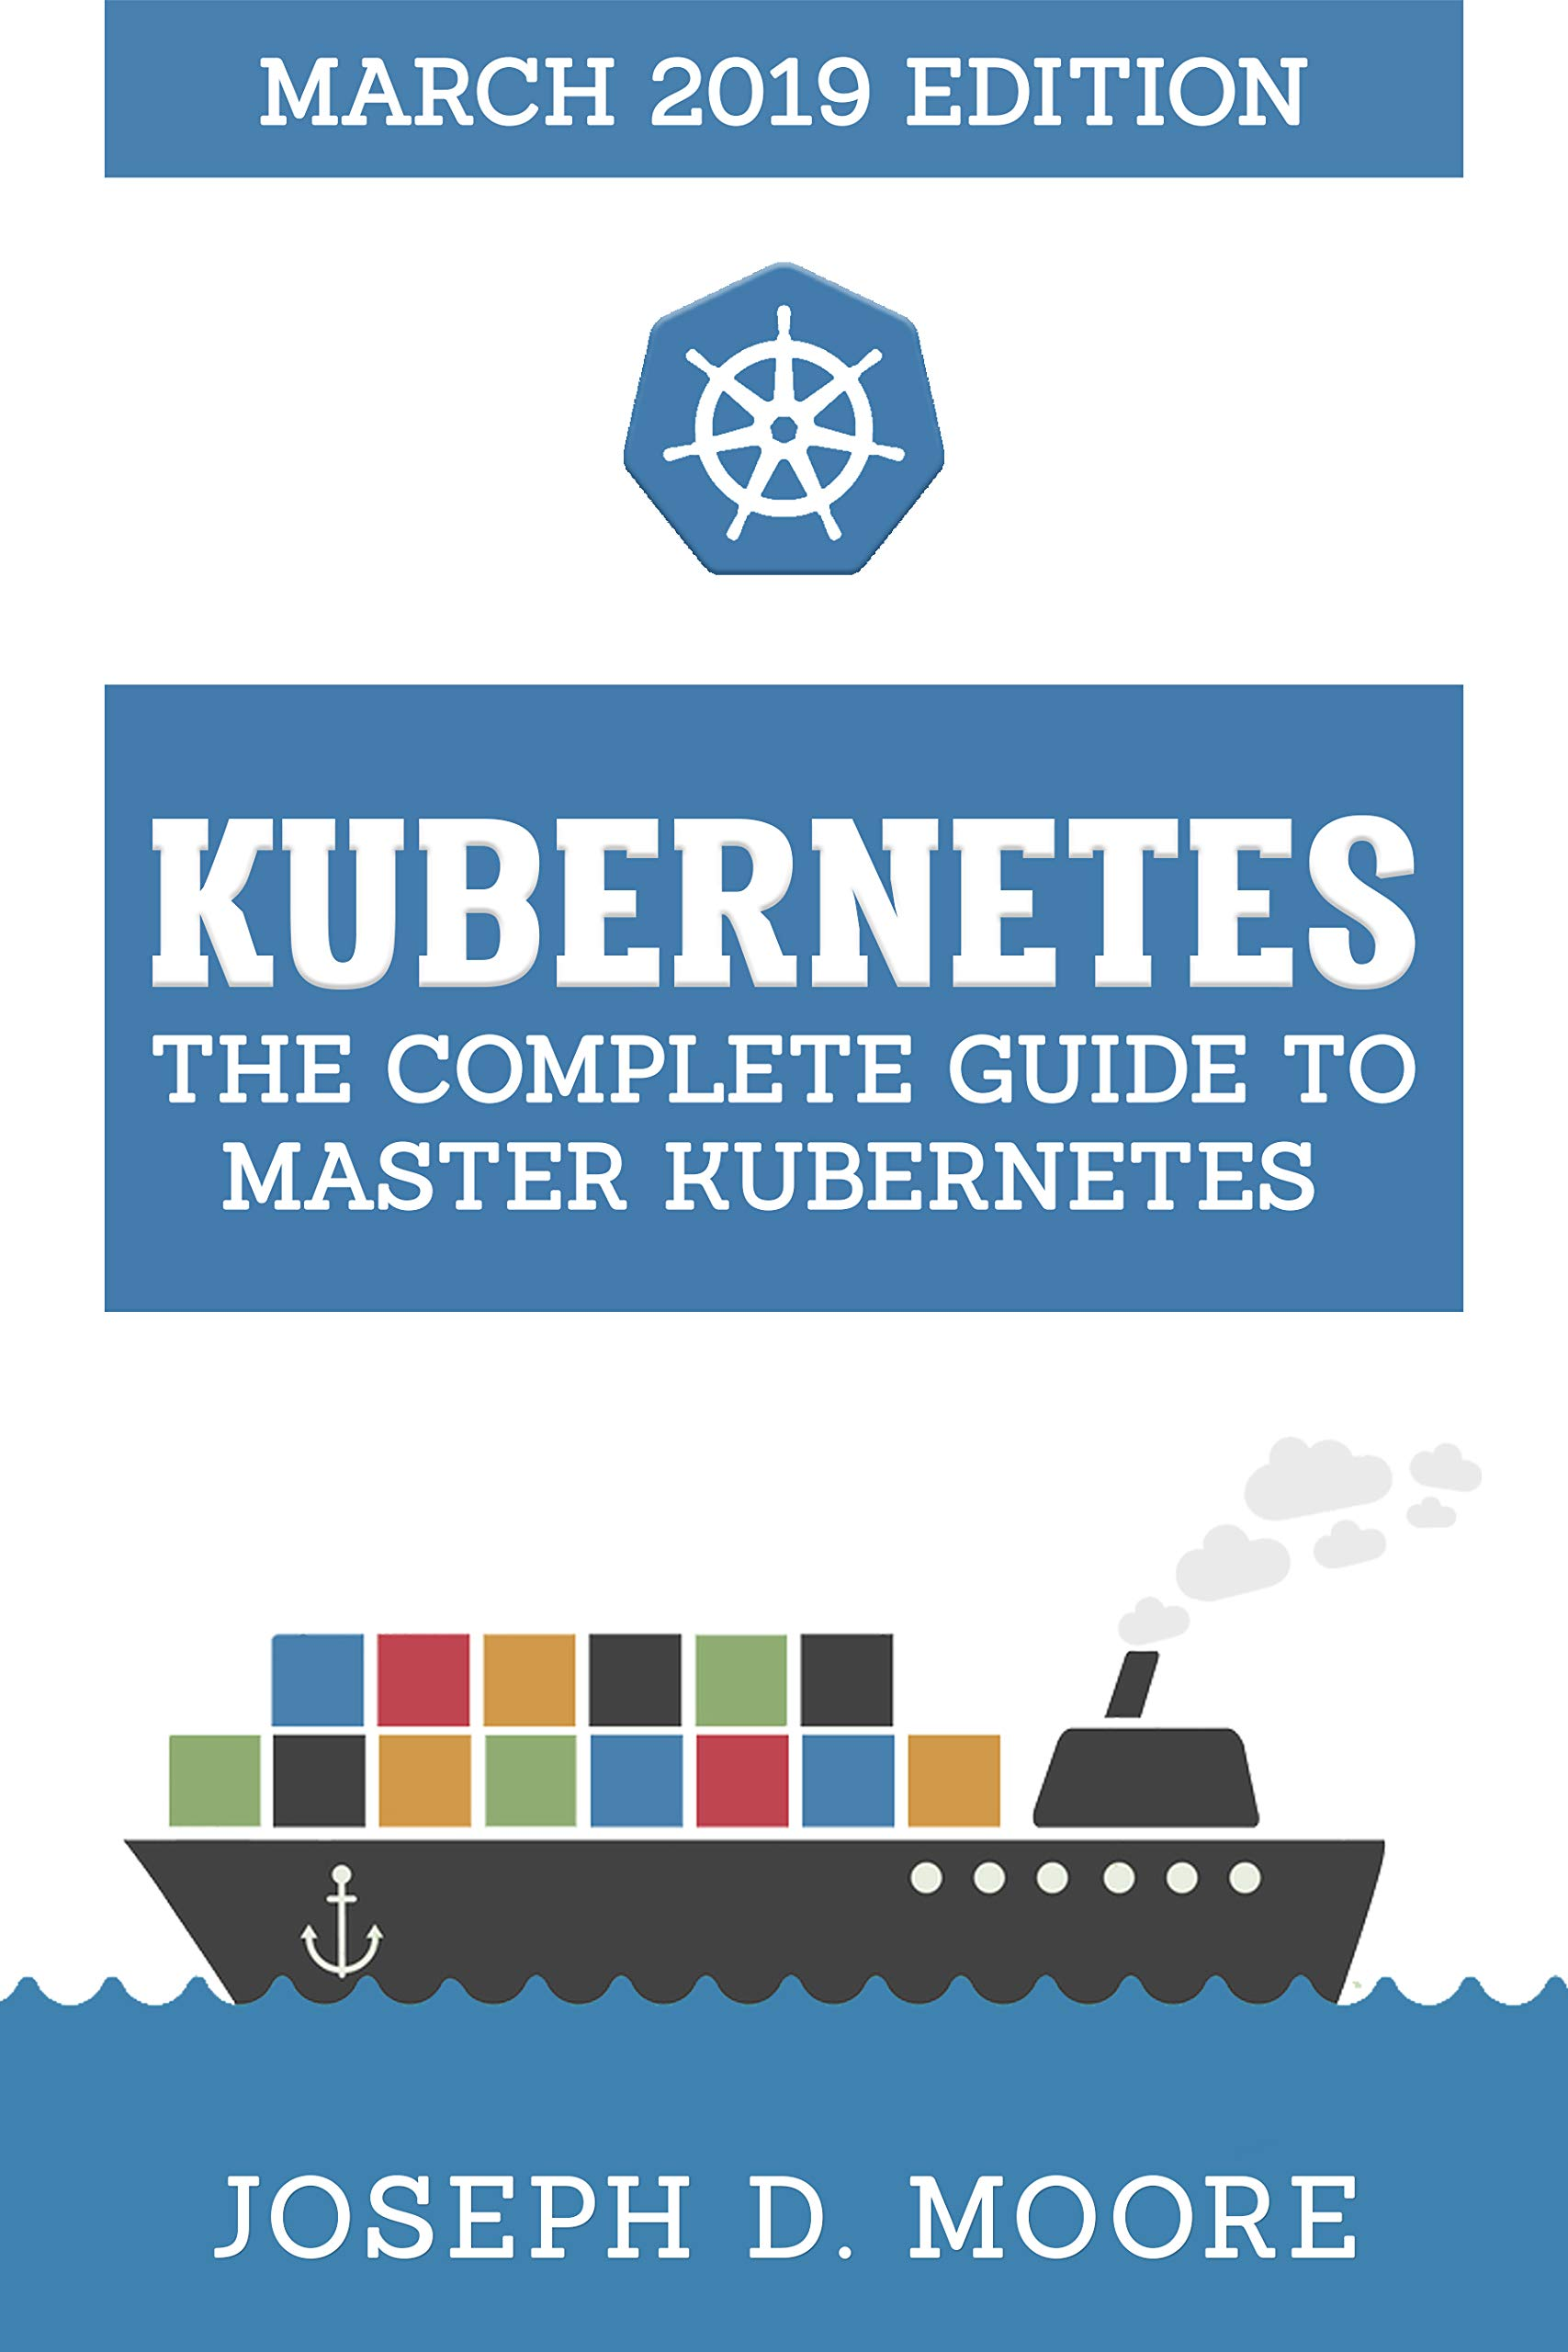 Kubernetes: The Complete Guide To Master Kubernetes (March 2019 Edition) (English Edition)